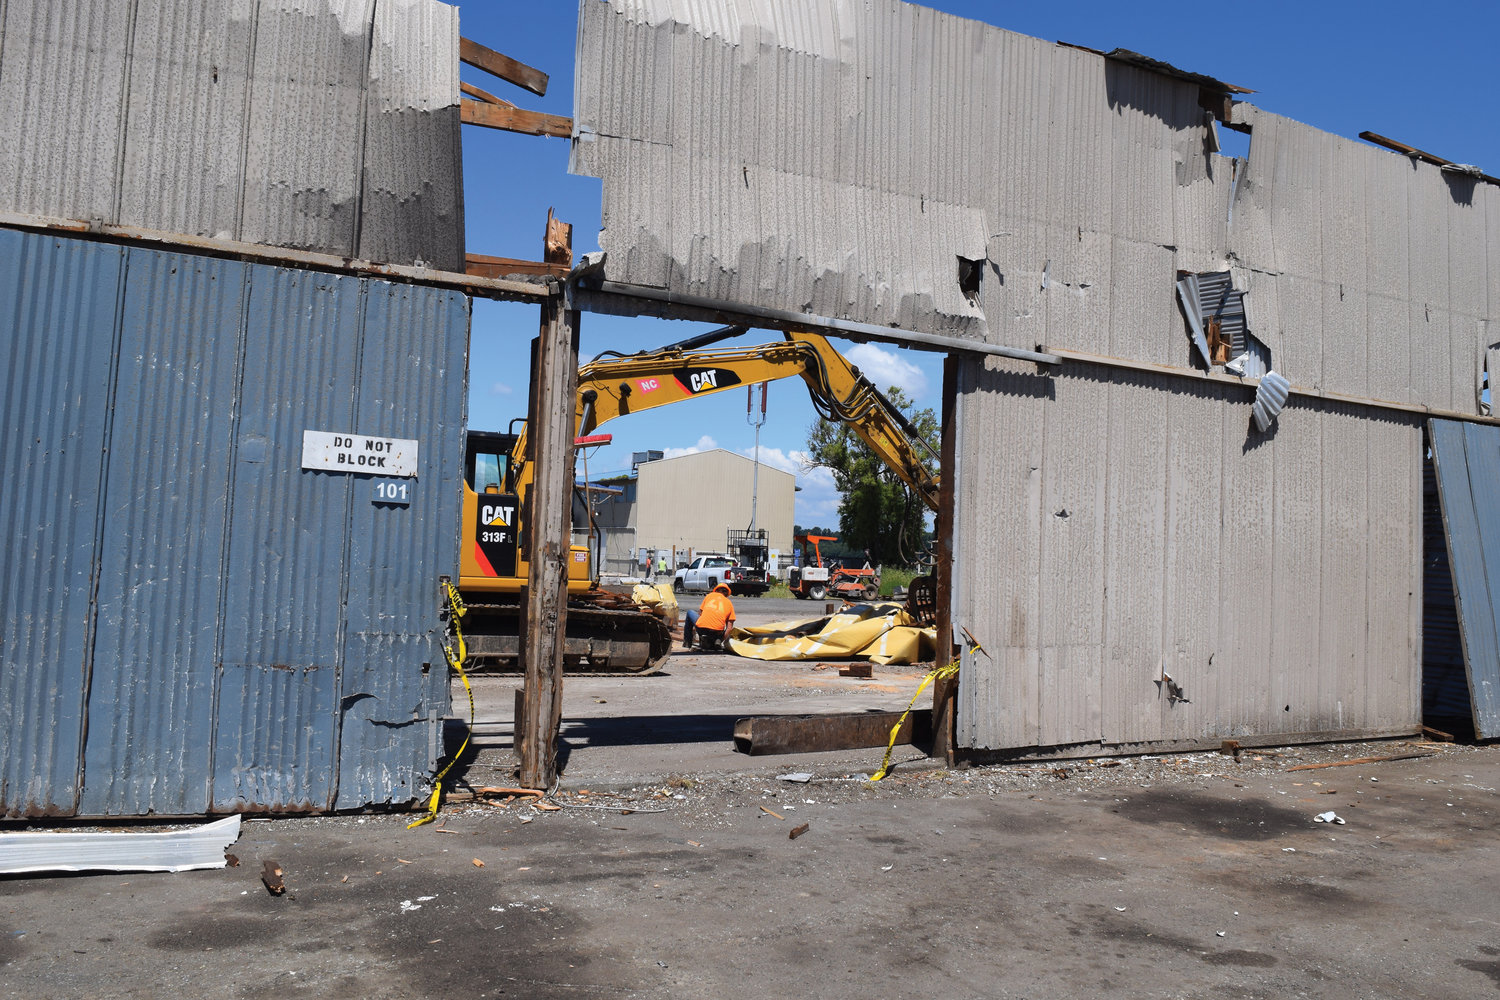 Port of Bellingham contractor Lautenbach Recycling works on demolishing a marine storage building at the end of Marine Drive on July 13.